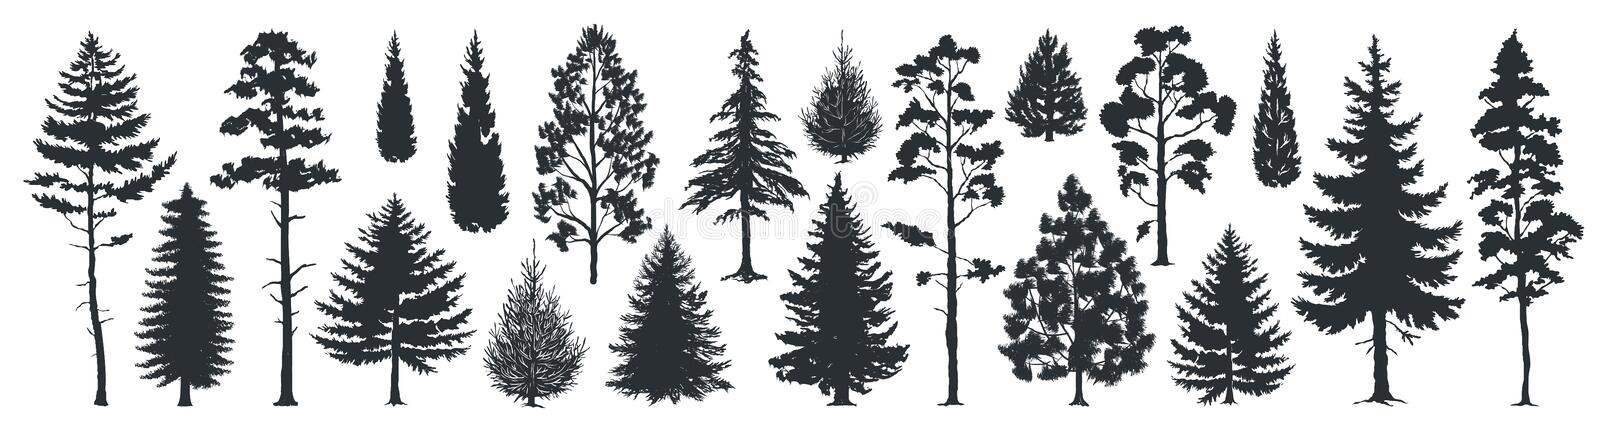 Pine tree silhouettes. Evergreen forest firs and spruces black shapes, wild nature trees templates. Vector woodland. Pine tree silhouettes. Evergreen forest firs